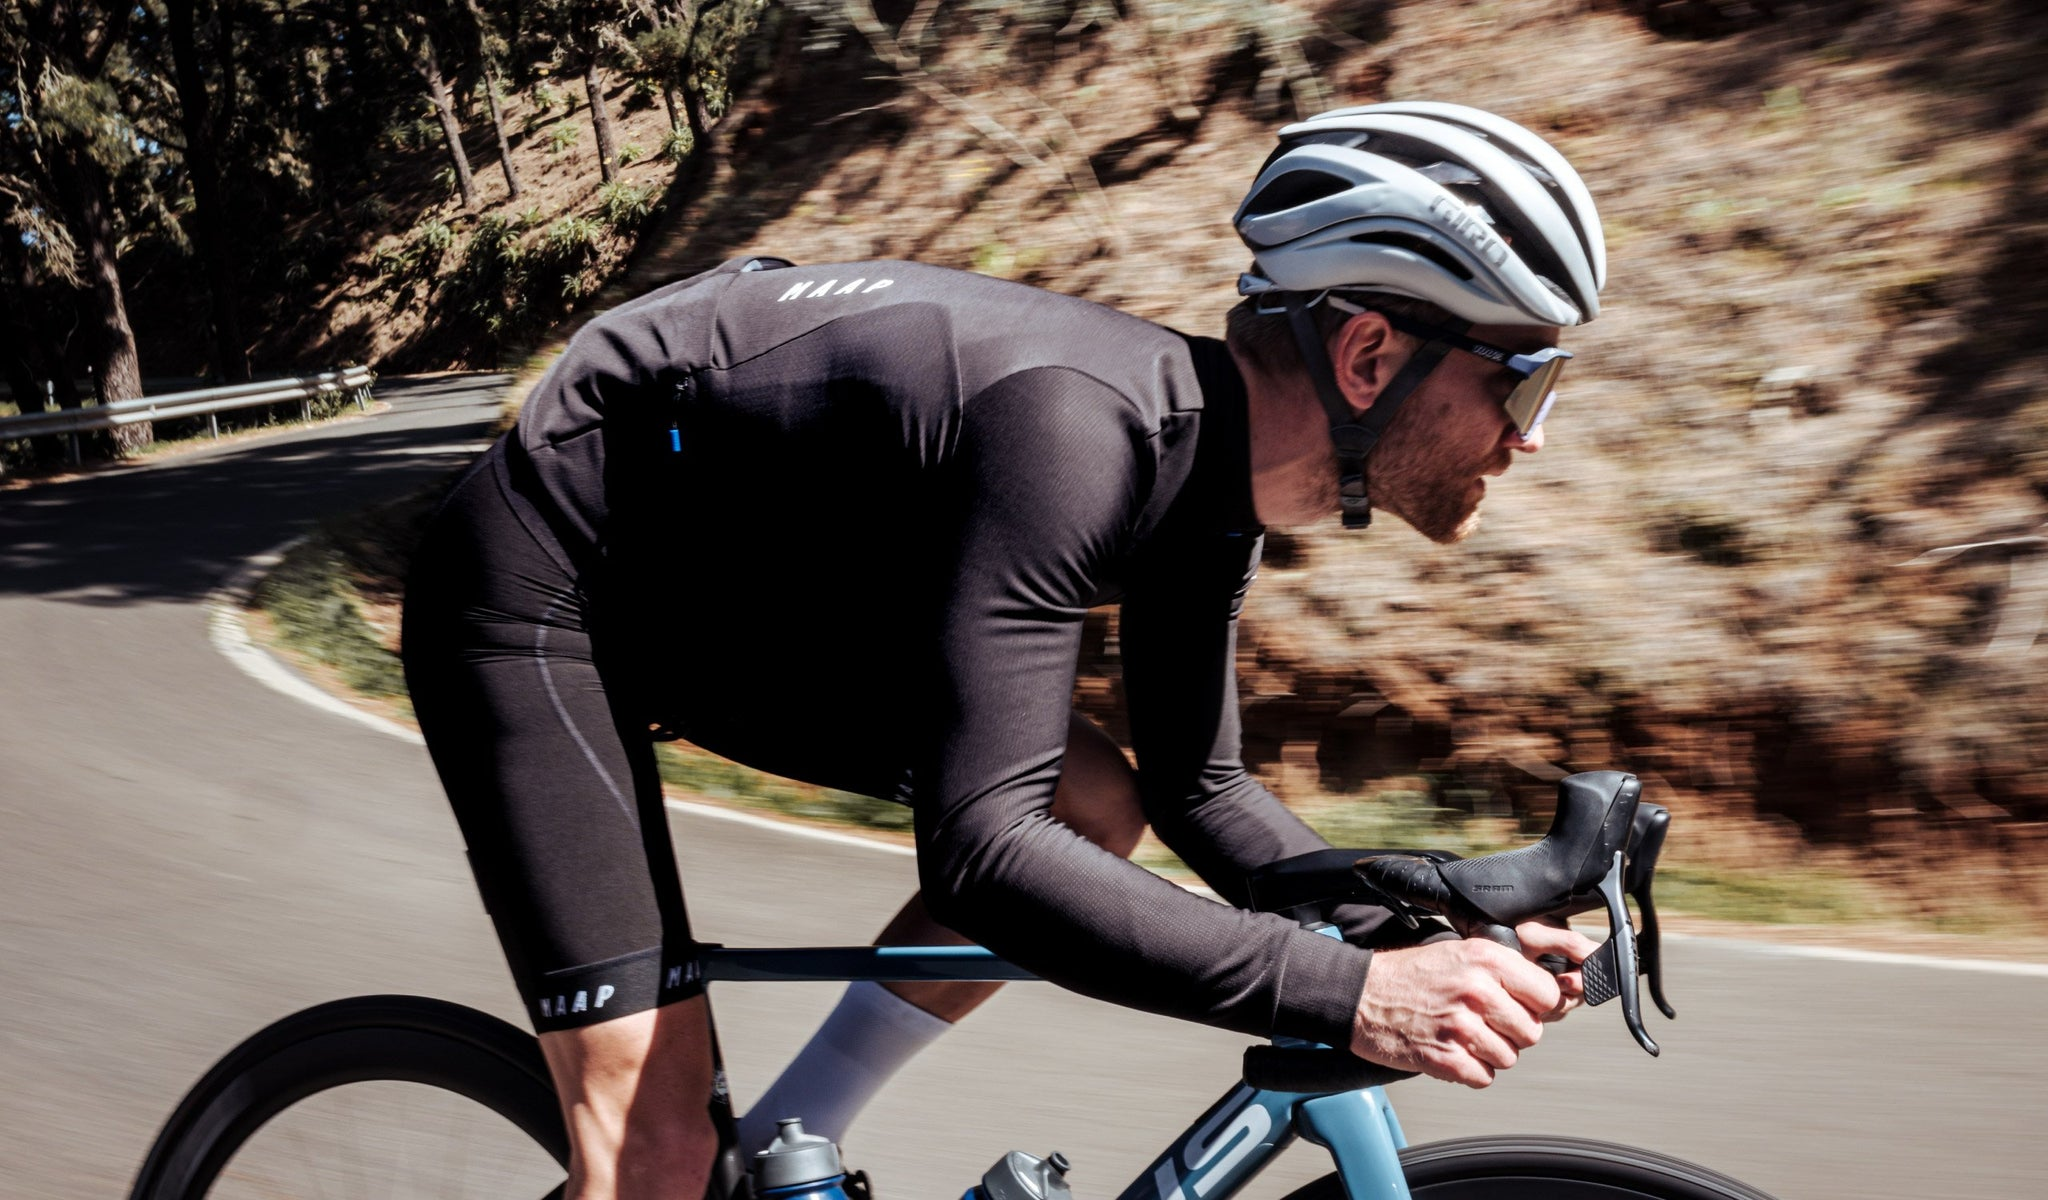 MAAP Force Pro Long Sleeve Cycling Jersey in Black for riding in mild conditions.